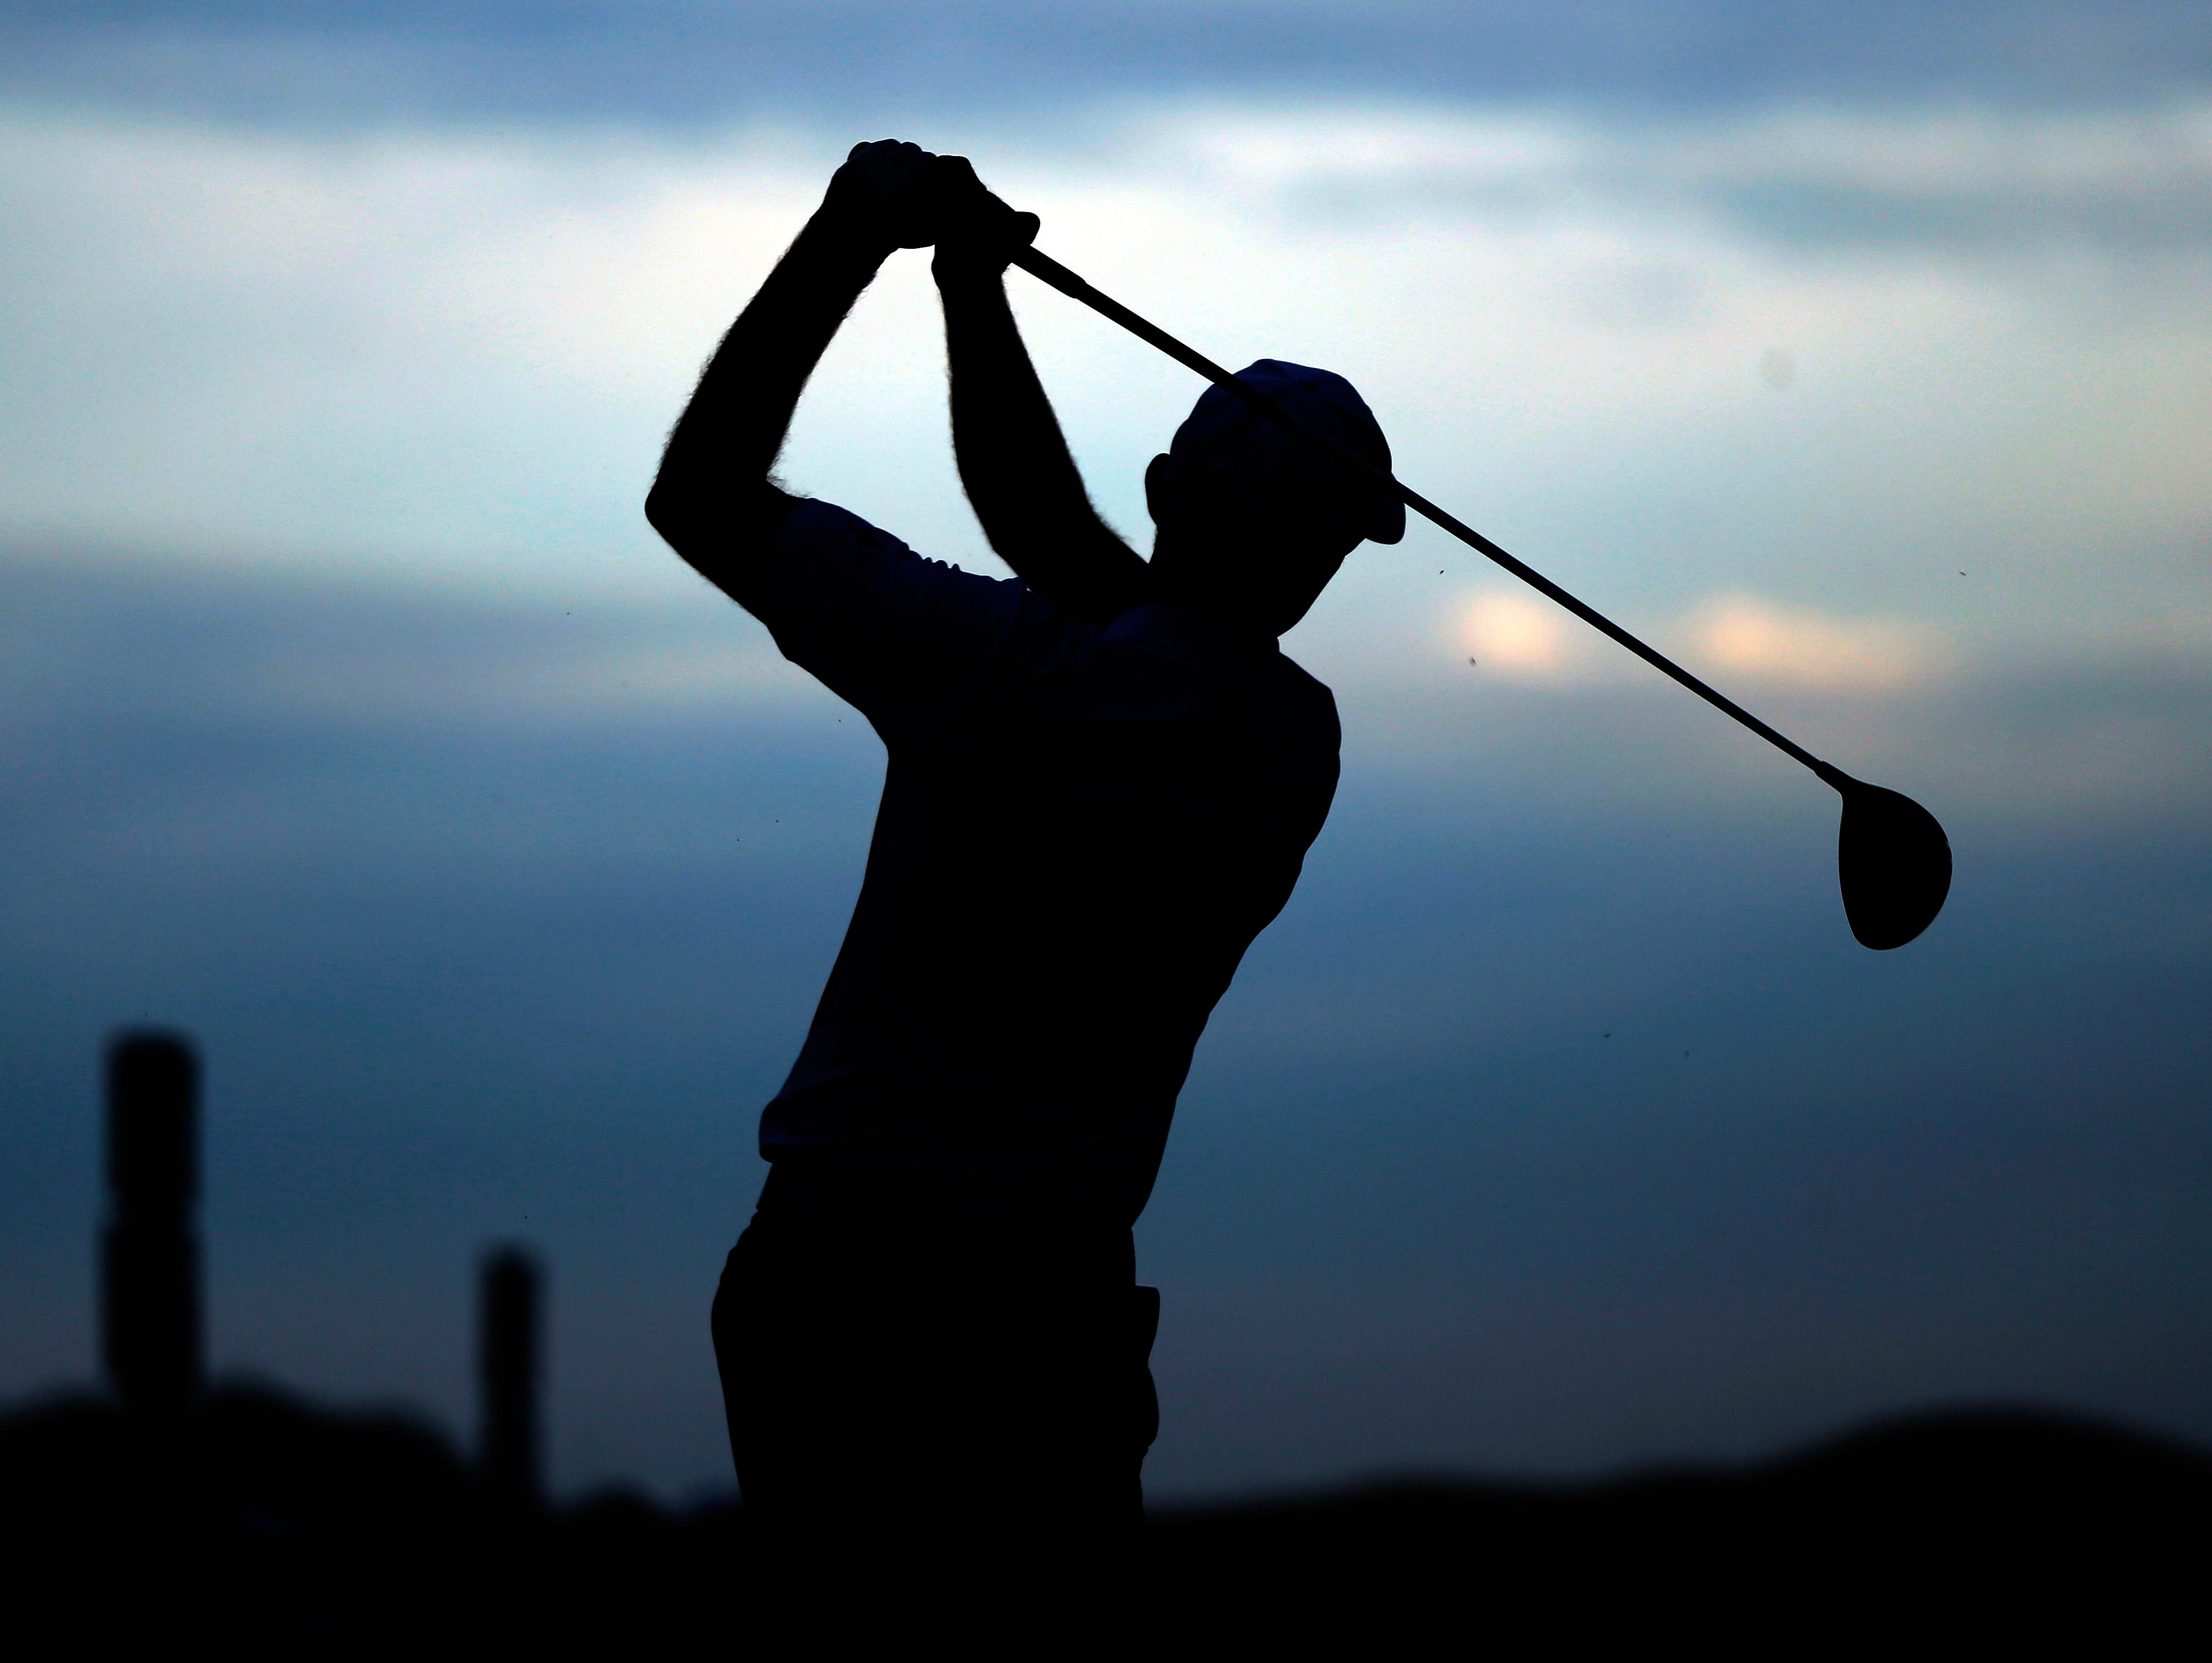 Brian Gaffney hits a drive on the 11th hole during the first round of the PGA Championship golf tournament Thursday, Aug. 13, 2015, at Whistling Straits in Haven, Wis. (AP Photo/Julio Cortez)